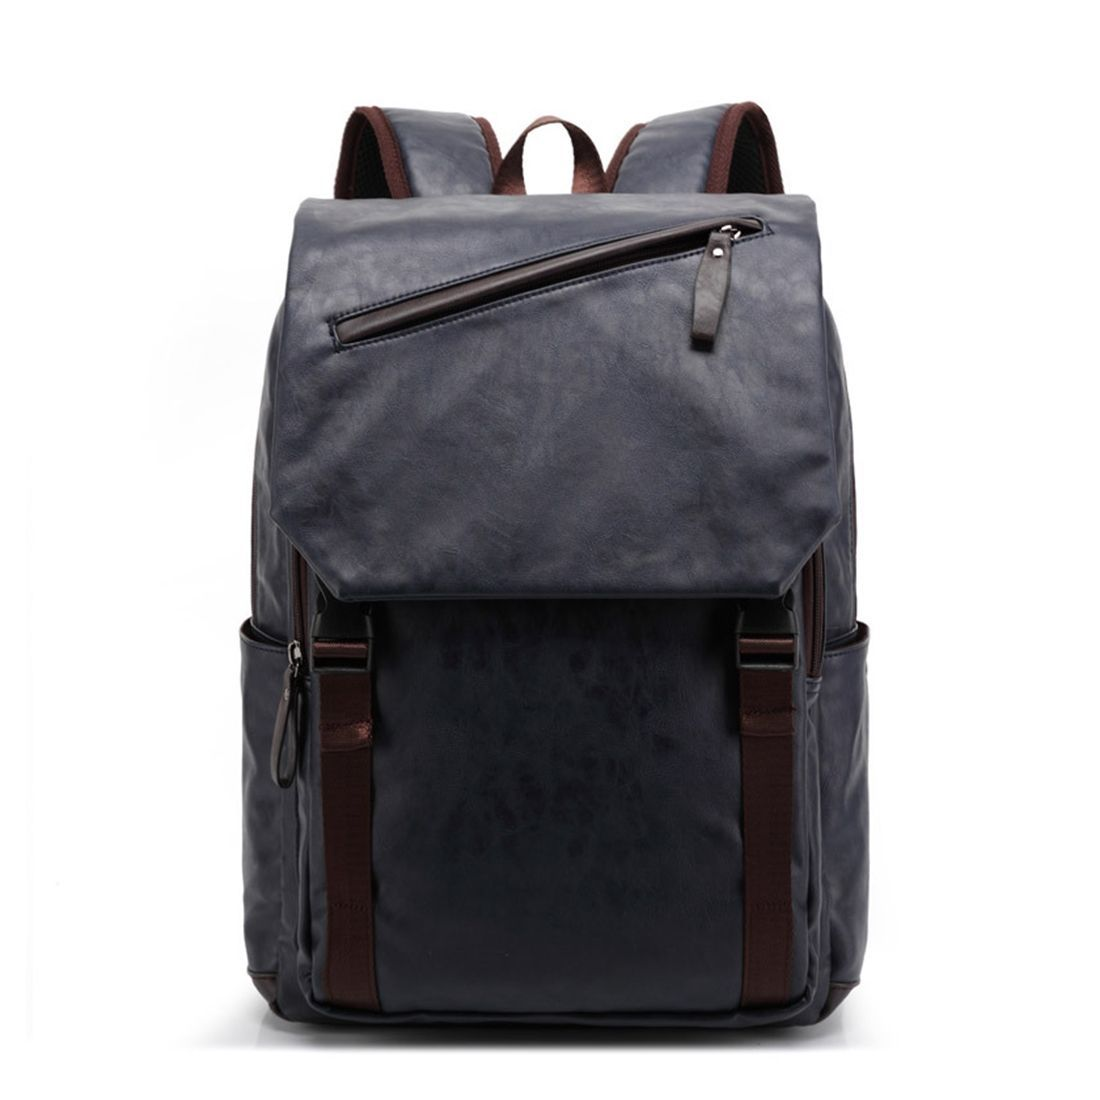 448707295074 Generic Preppy Style Double Layer PU Leather Backpack College School Bag  Travel Bag Mens Bag - Navy Blue